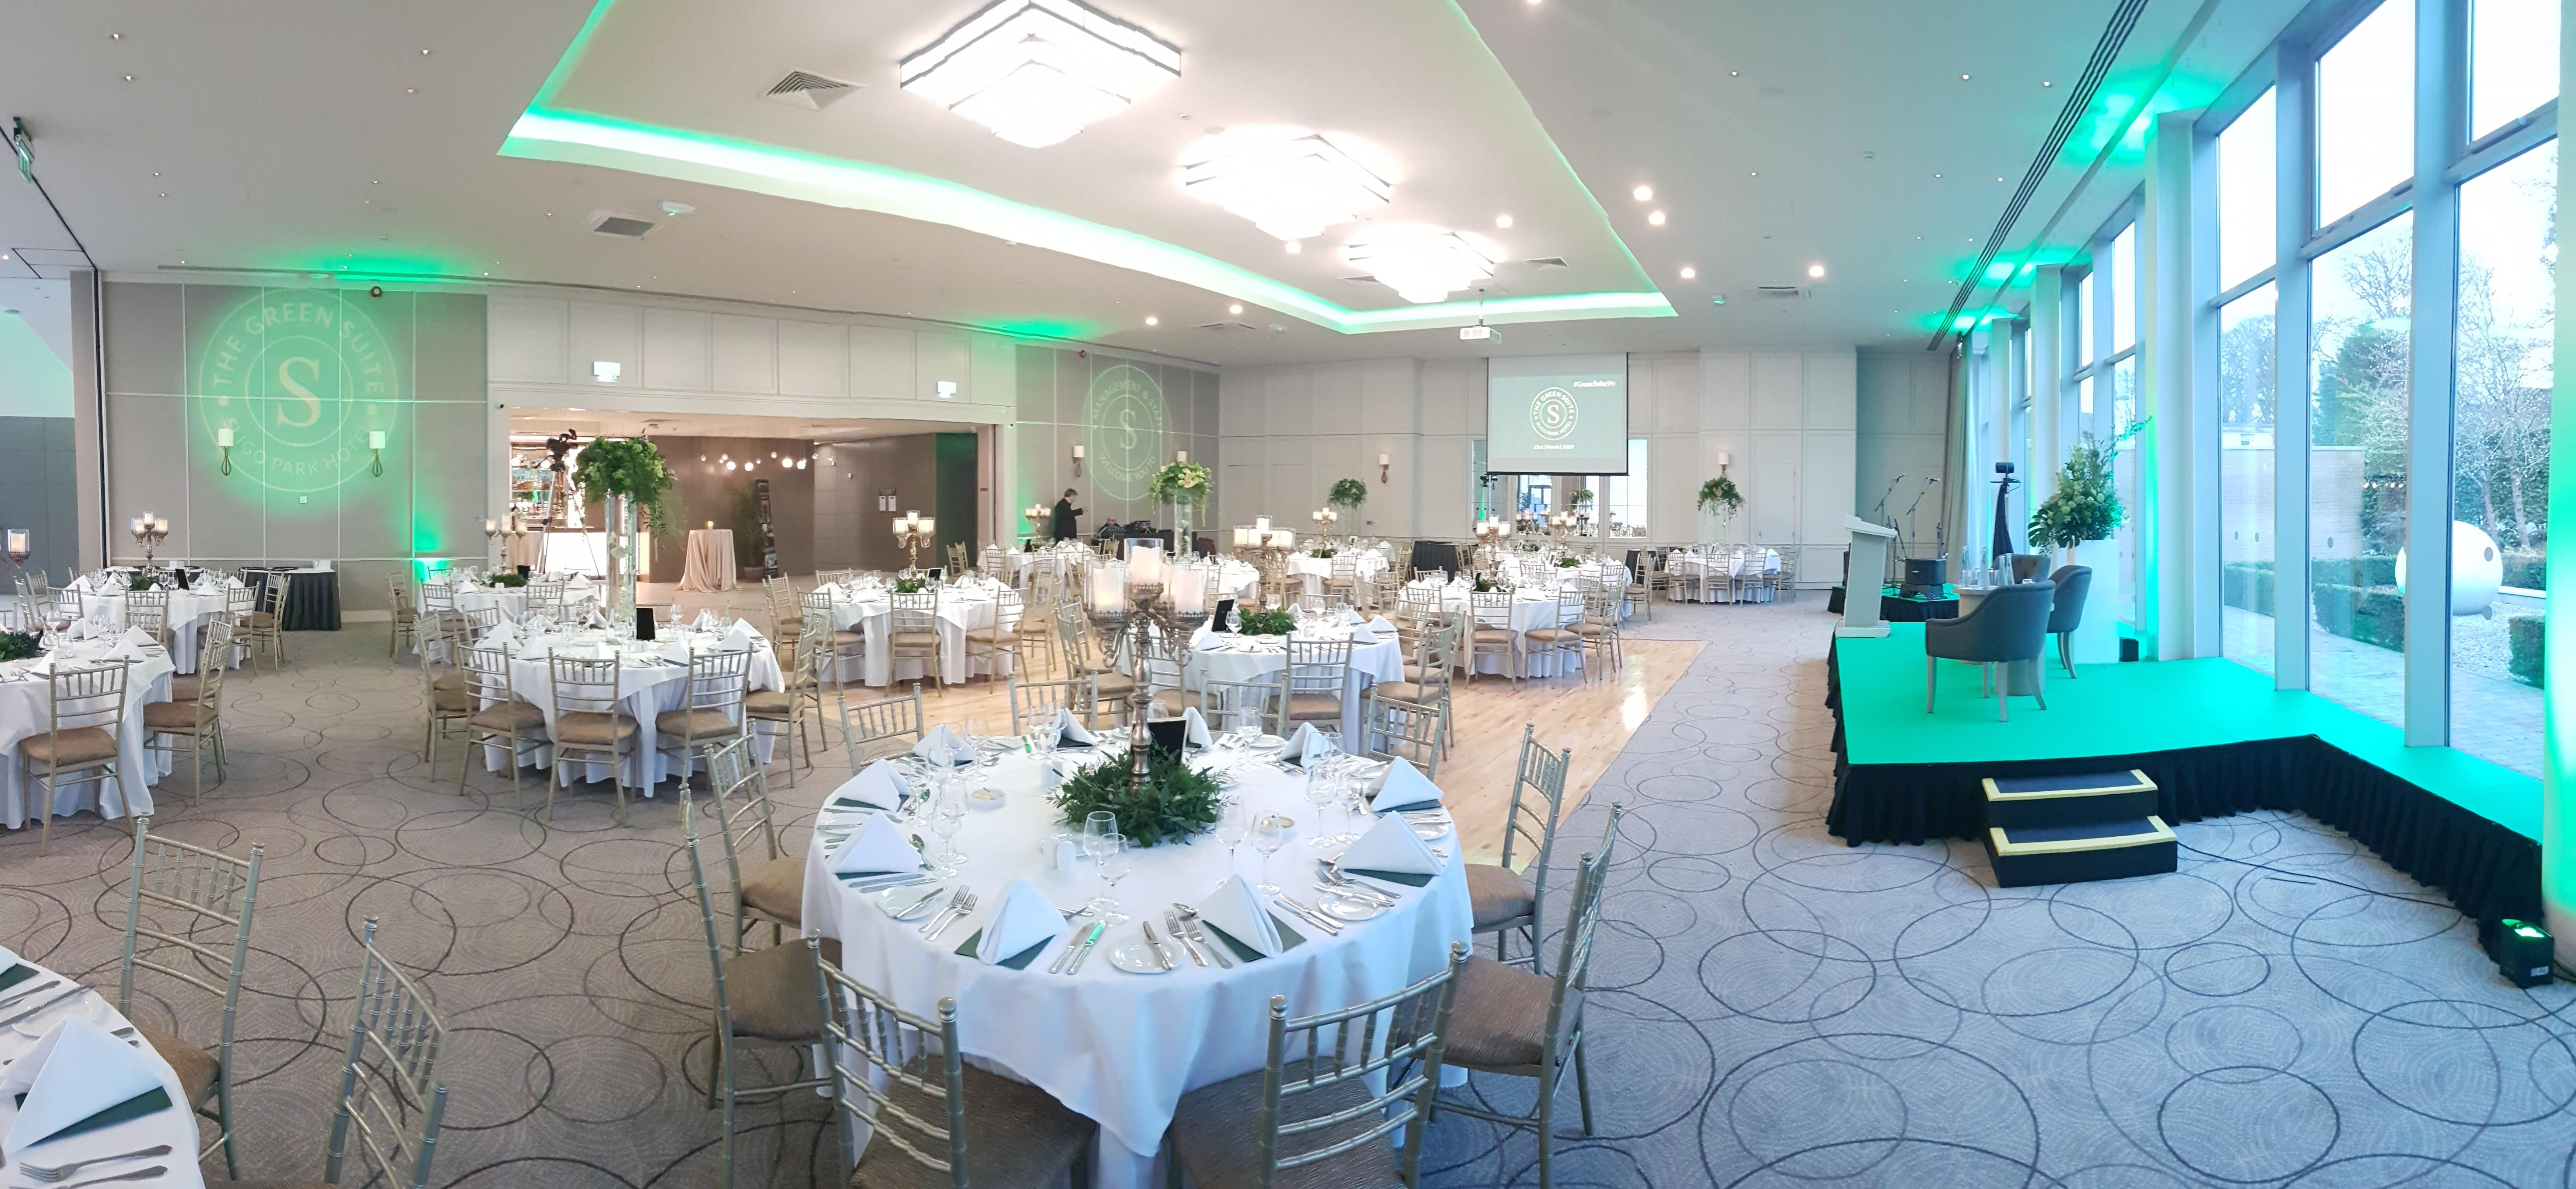 View of the Green Suite during the day